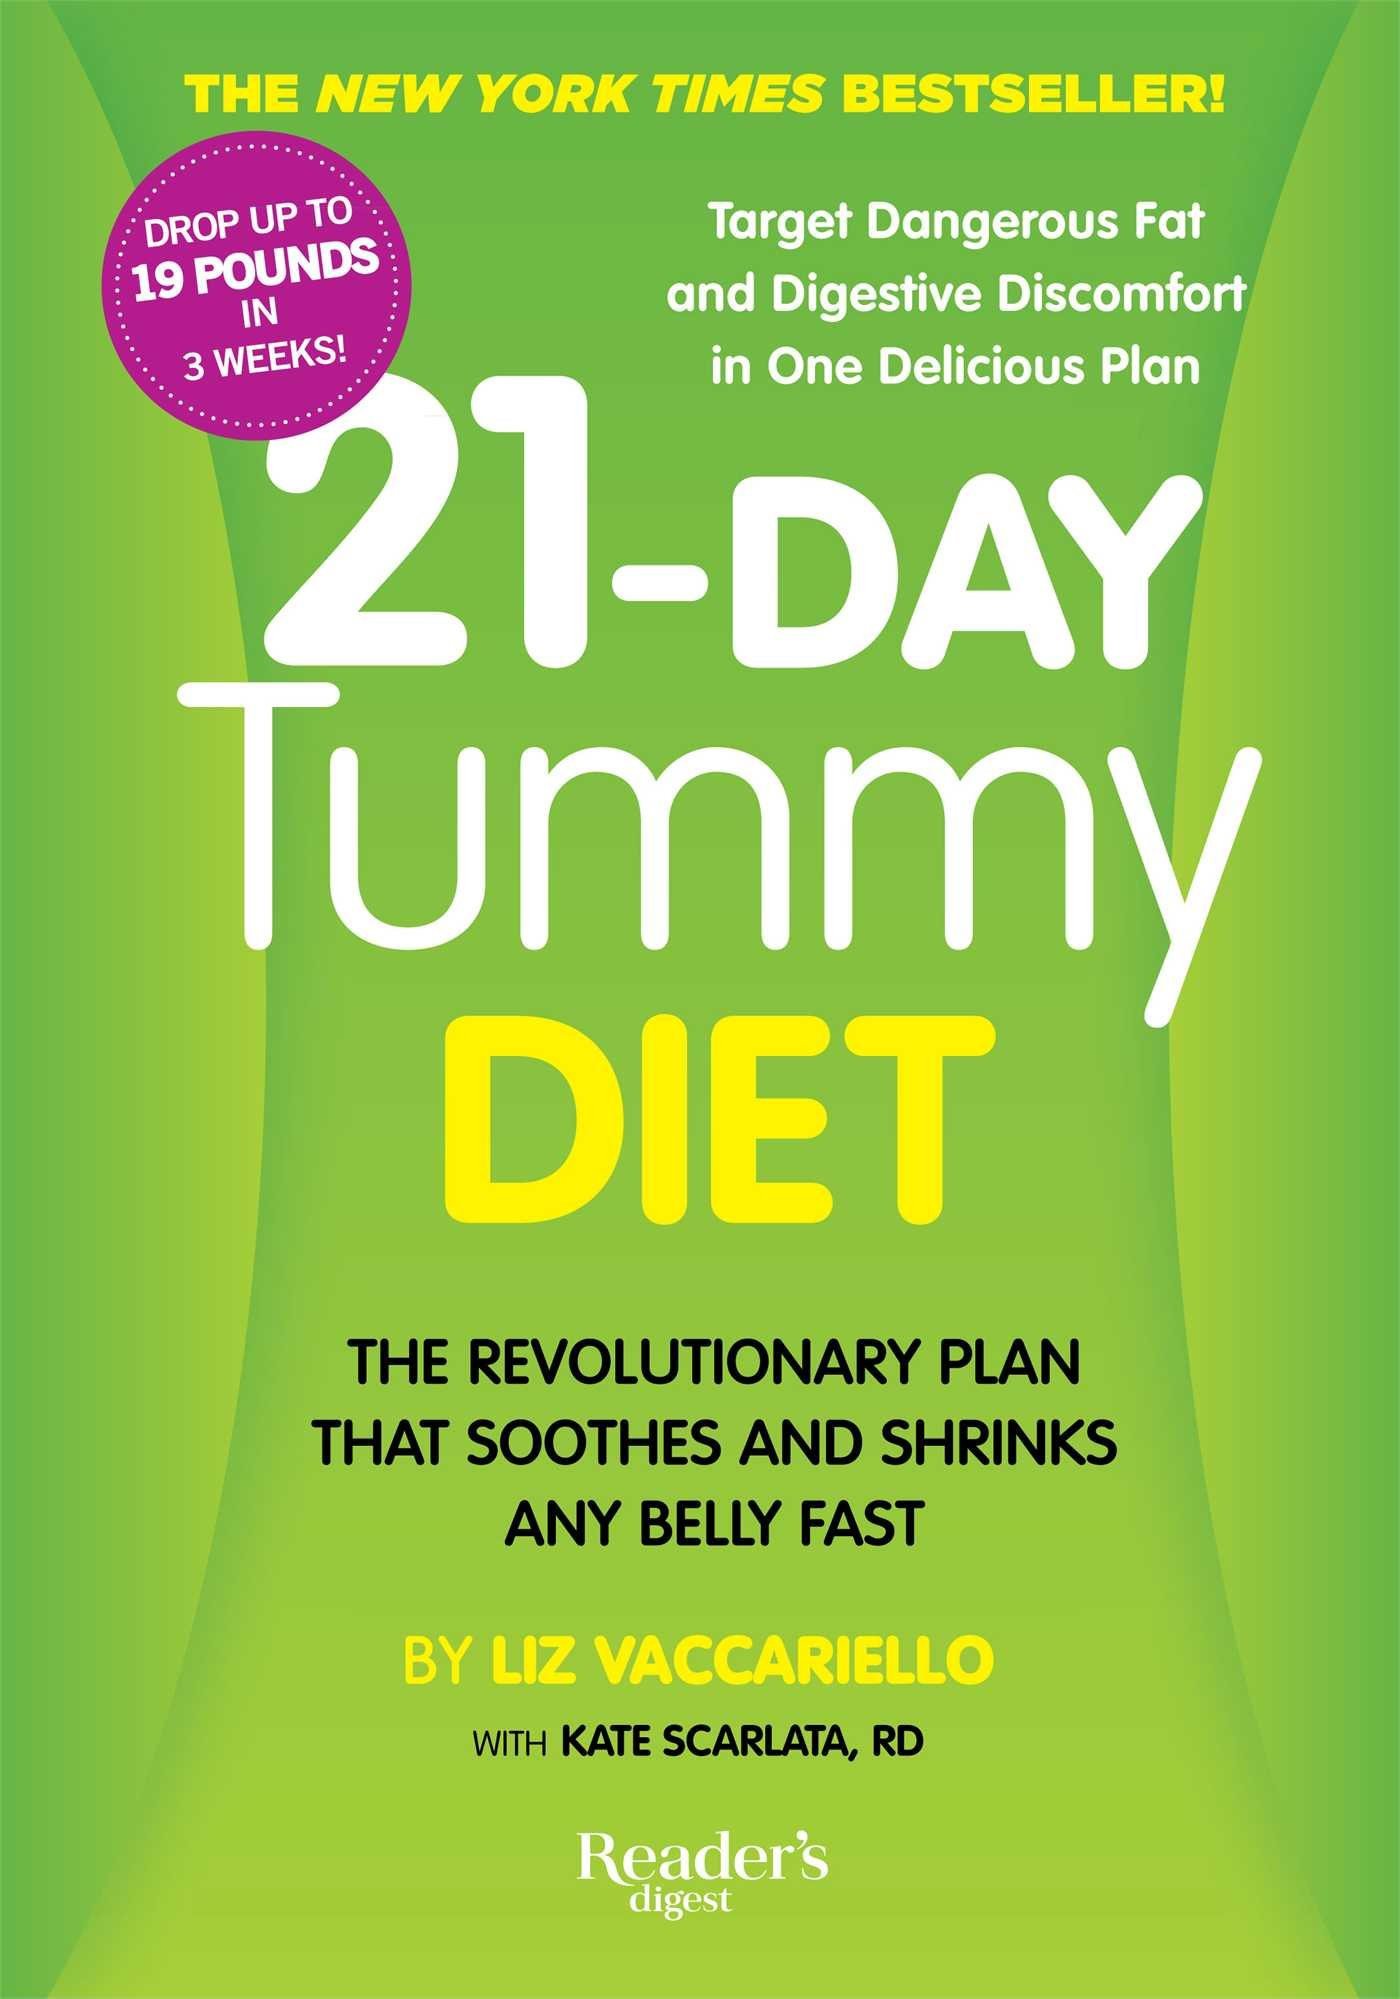 21-Day Tummy Diet: A Revolutionary Plan that Soothes and Shrinks Any Belly  Fast: Liz Vaccariello, Kate RD Scarlata: 9781621452041: Amazon.com: Books